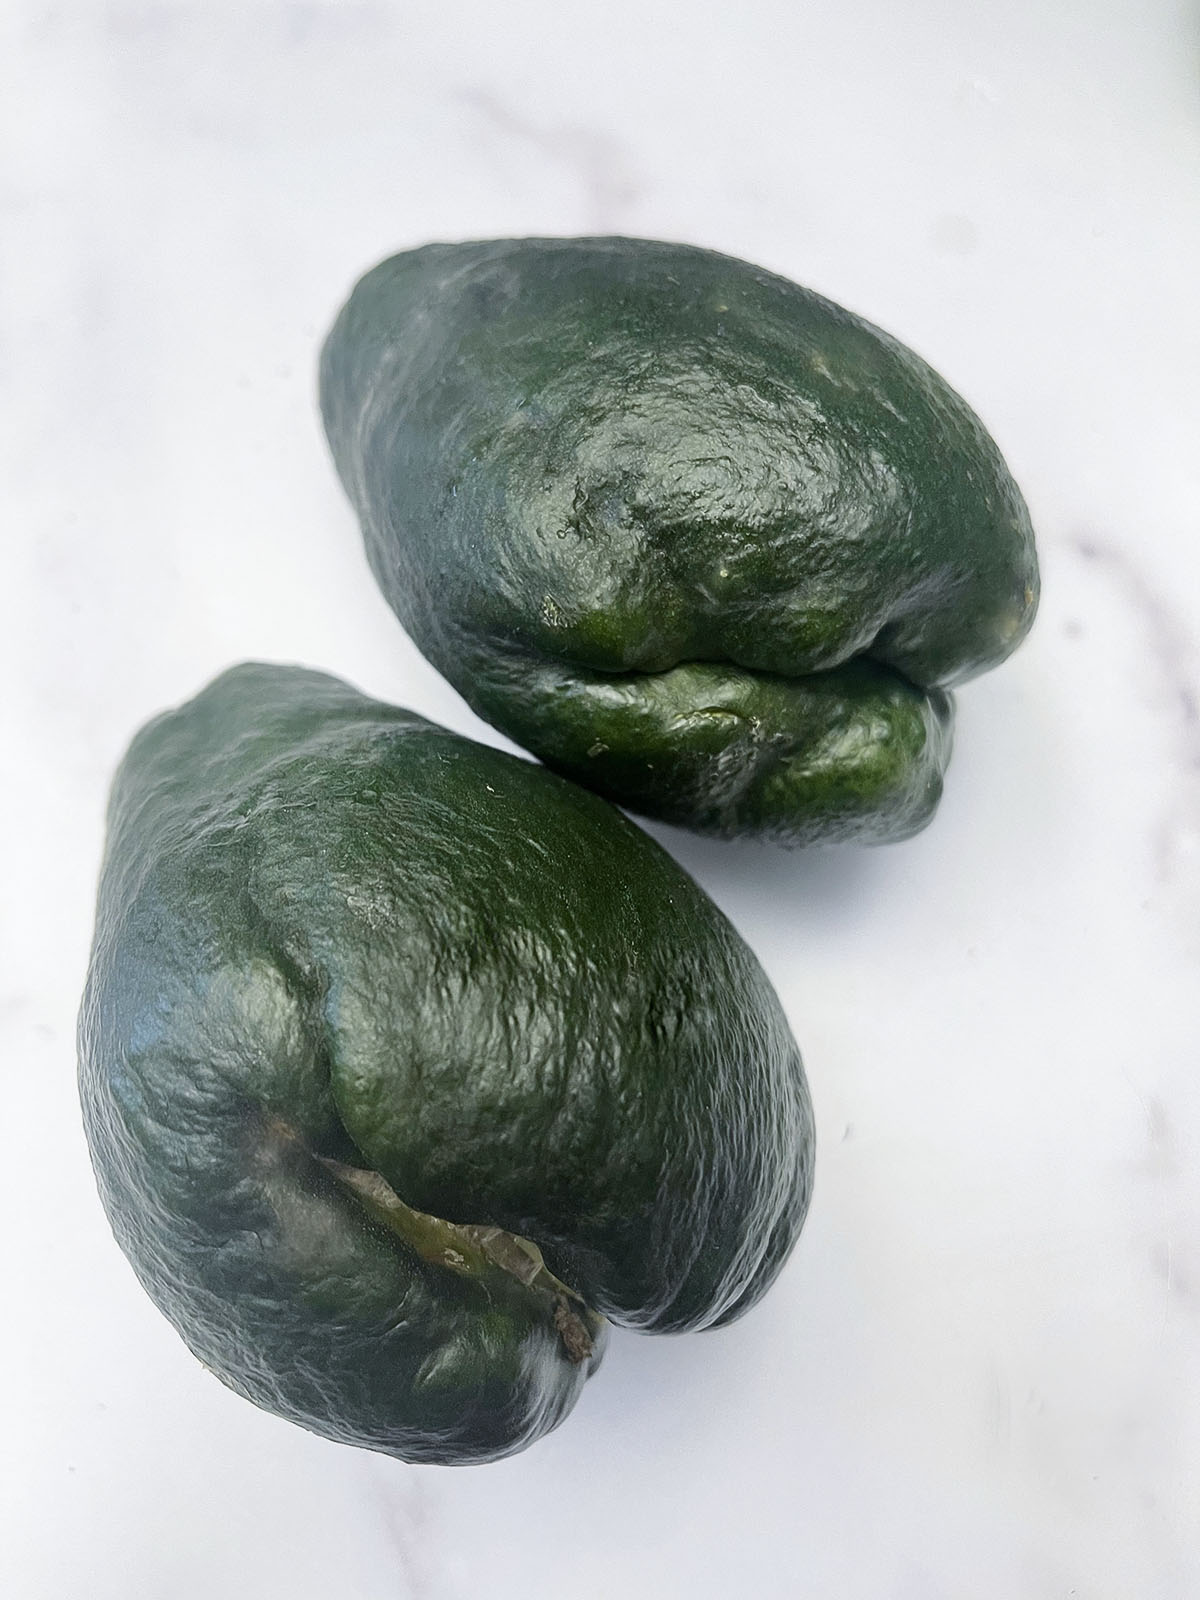 Black chayote on a white background